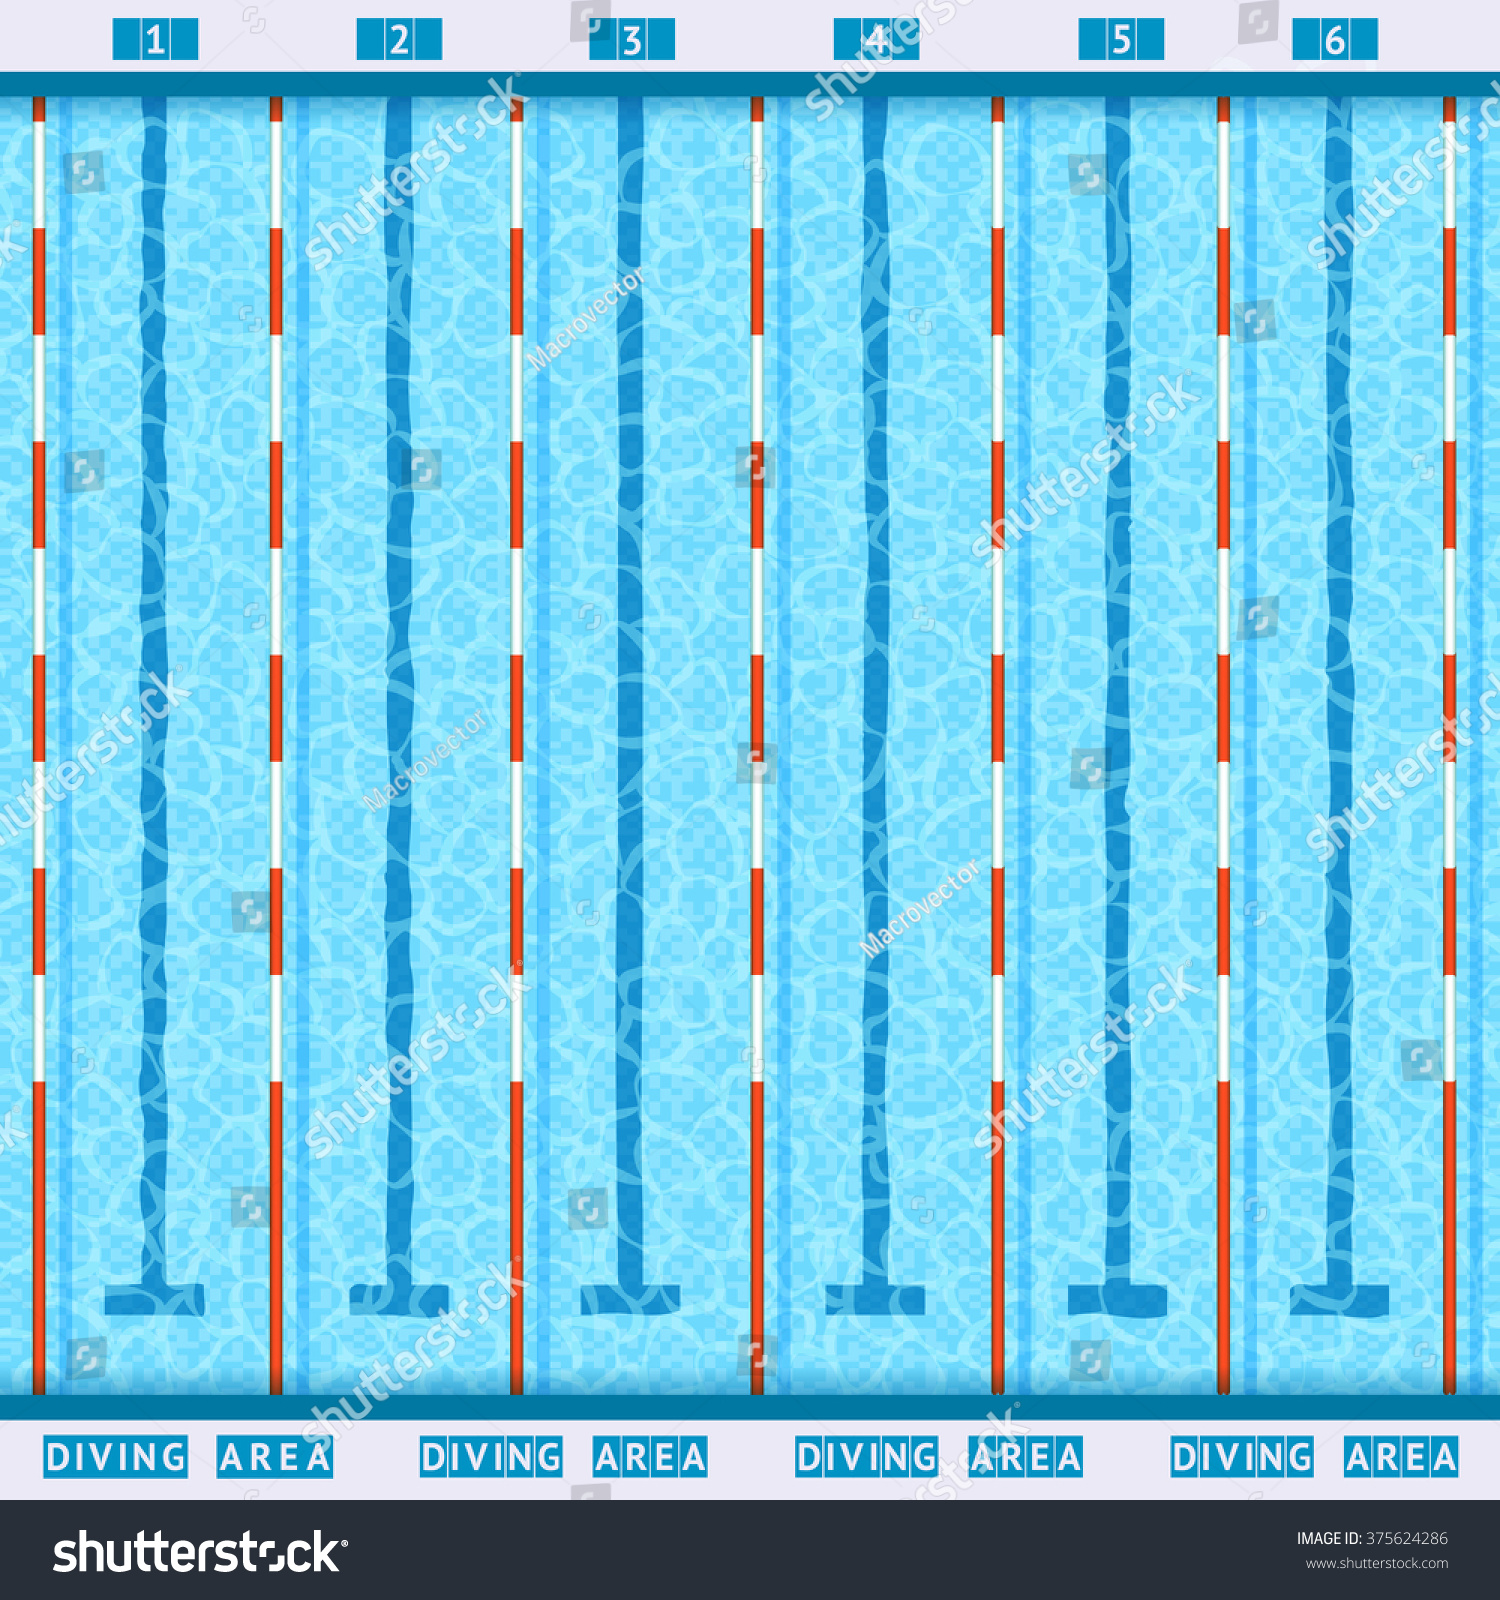 olympic swimming pool deep bath lanes top view flat pictogram with clean transparent blue water vector - Olympic Swimming Pool Lanes